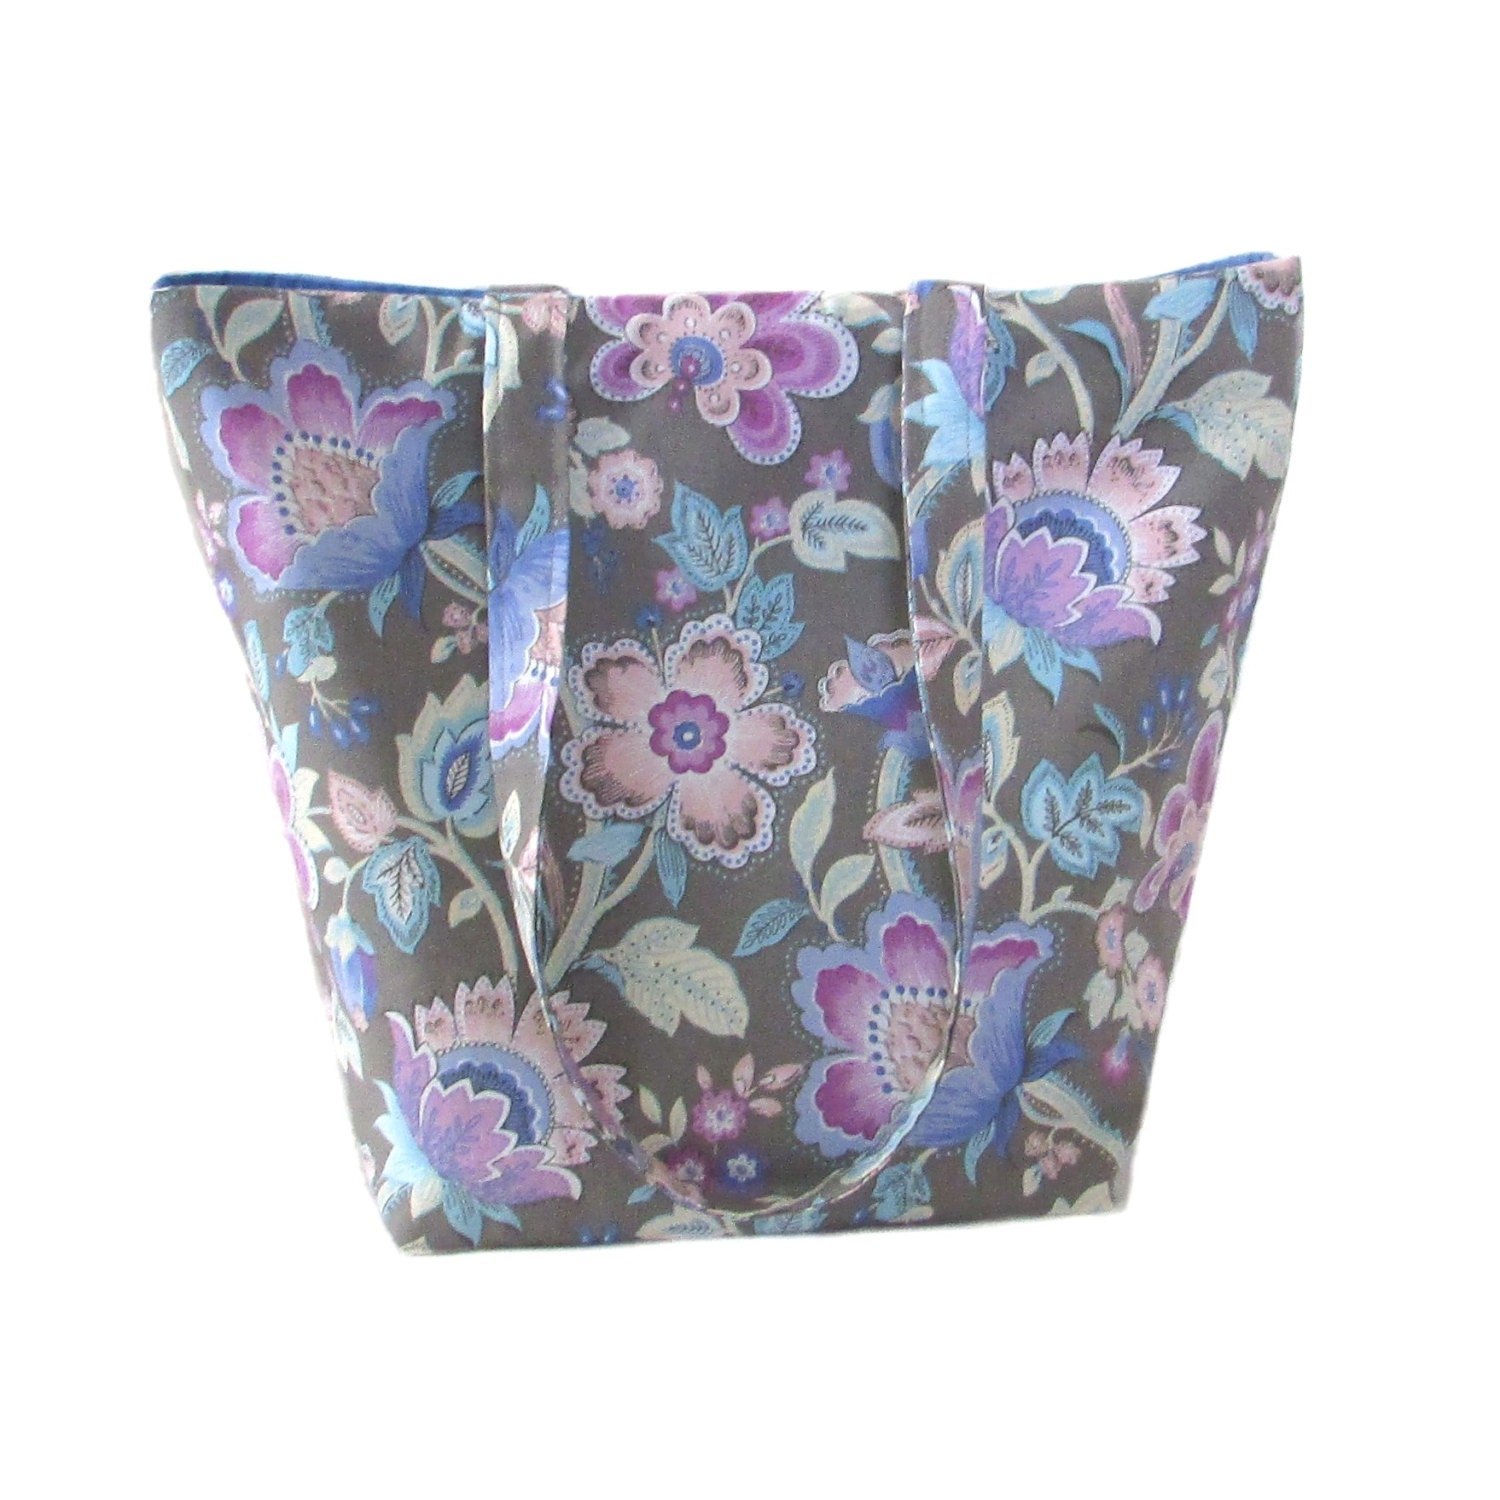 Muted Blue And Floral Red: Floral Tote Bag Gray Fabric Purse Blue Floral Pink Flowers